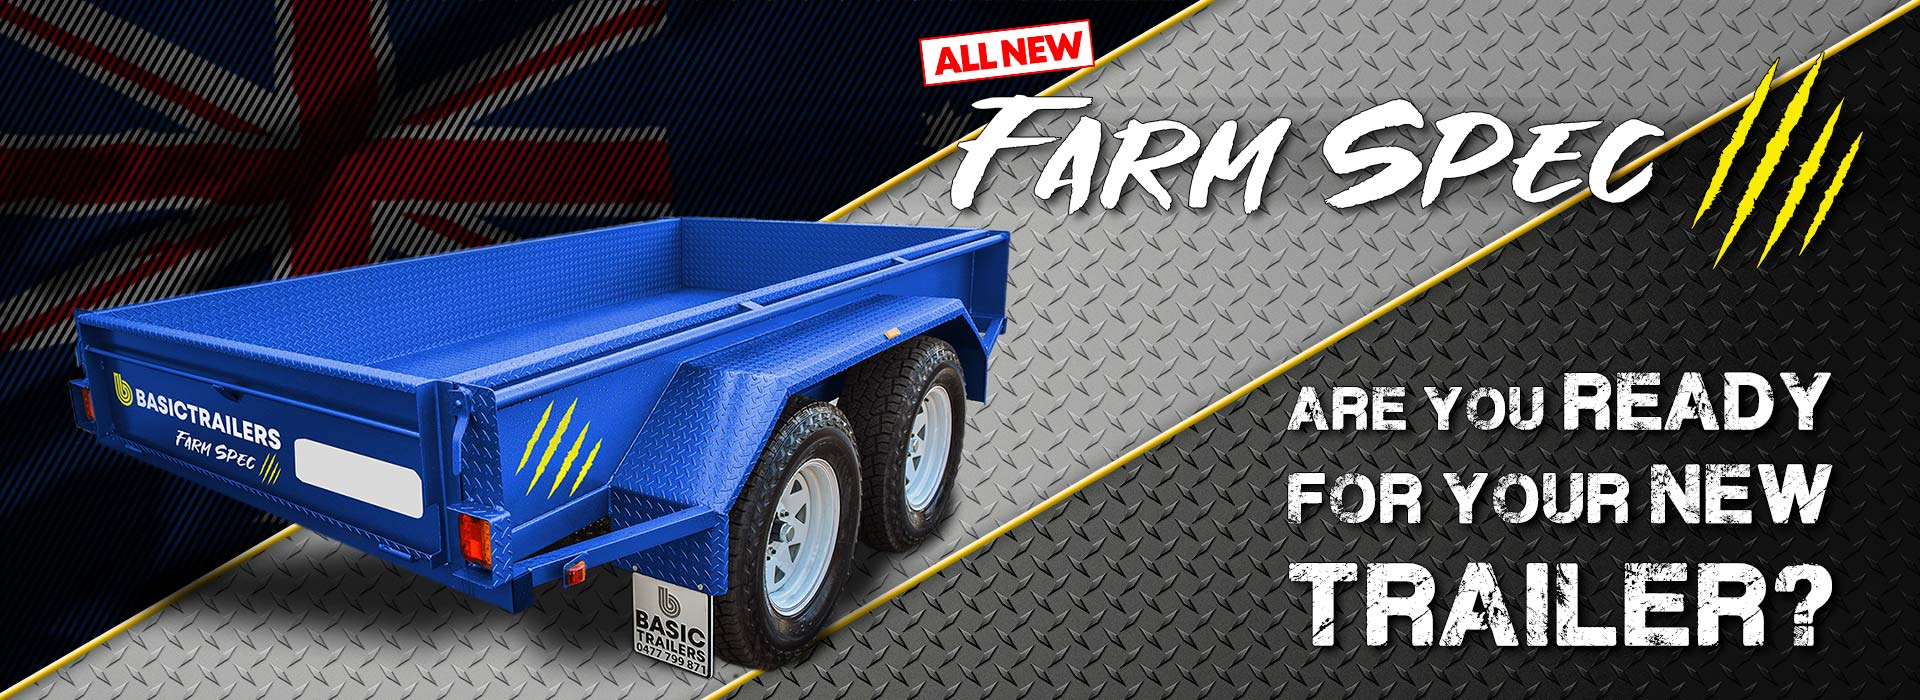 Trailers for sales, Trailers adelaide